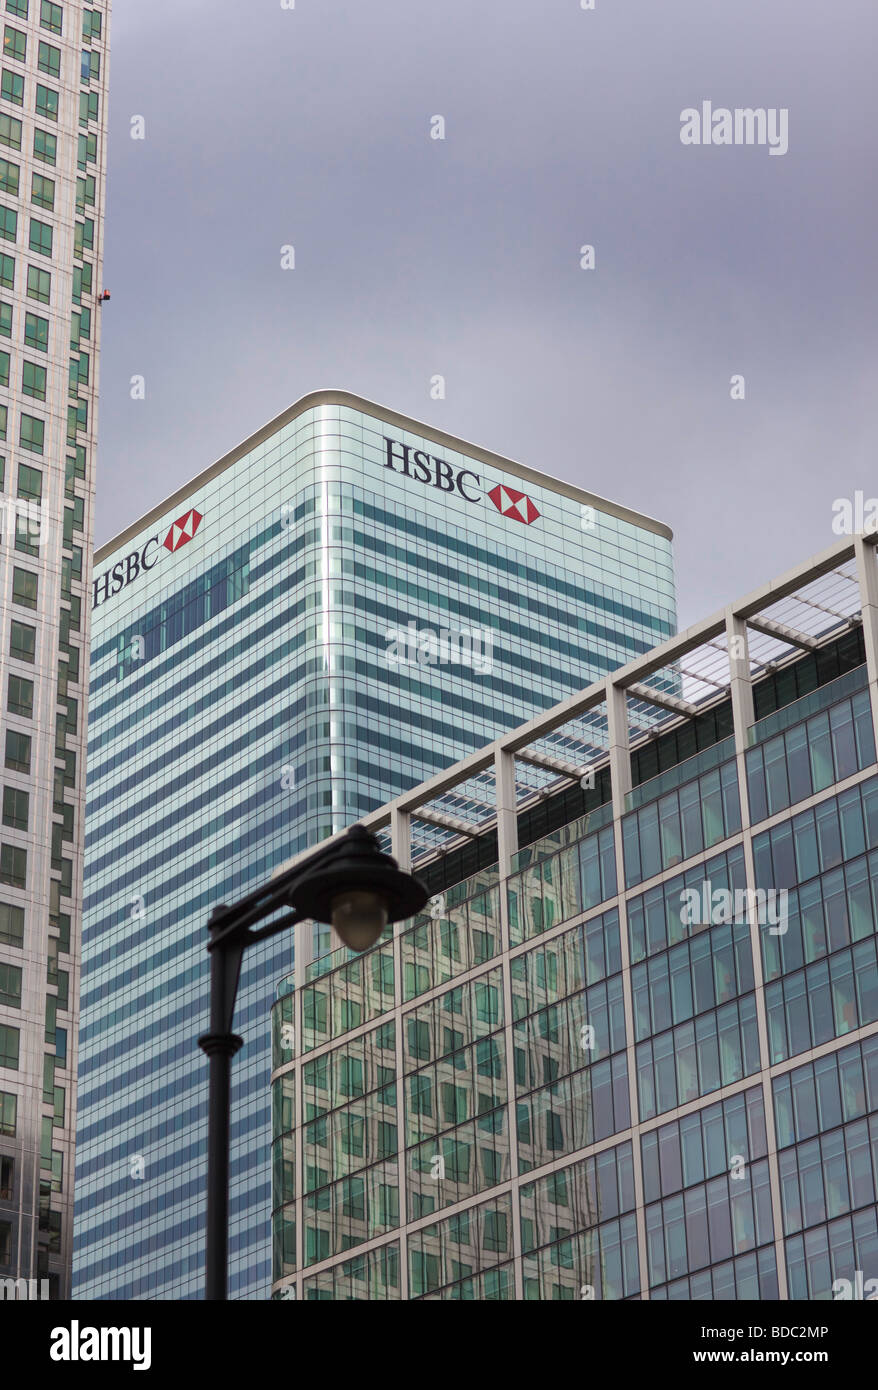 HSBC Bank and Upperbank at Canary Wharf in London - Stock Image